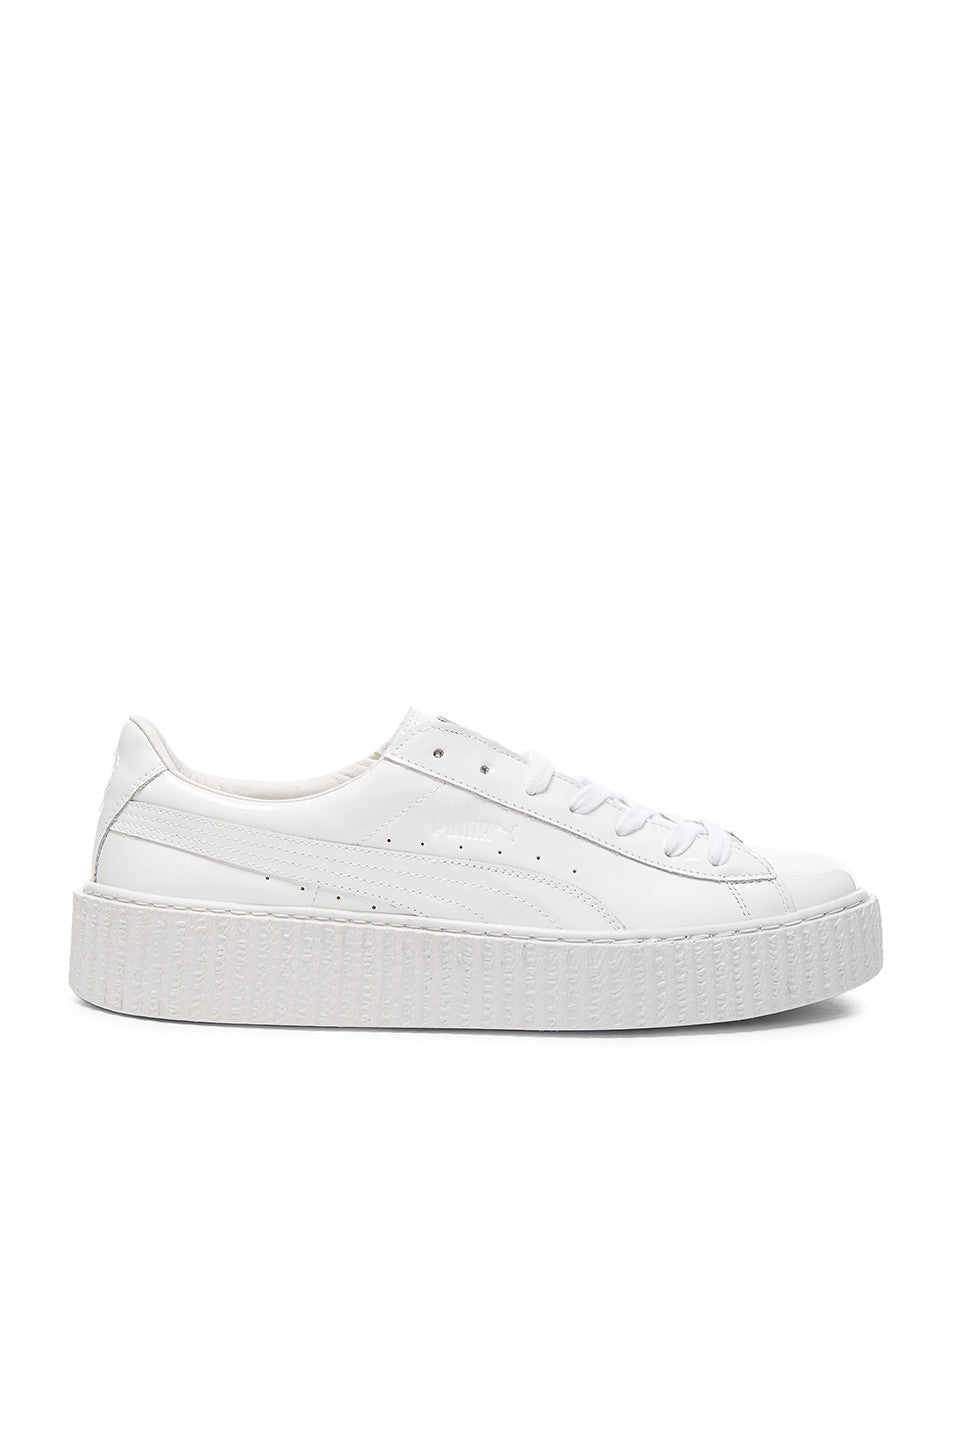 Fenty by Puma Patent Leather Creepers